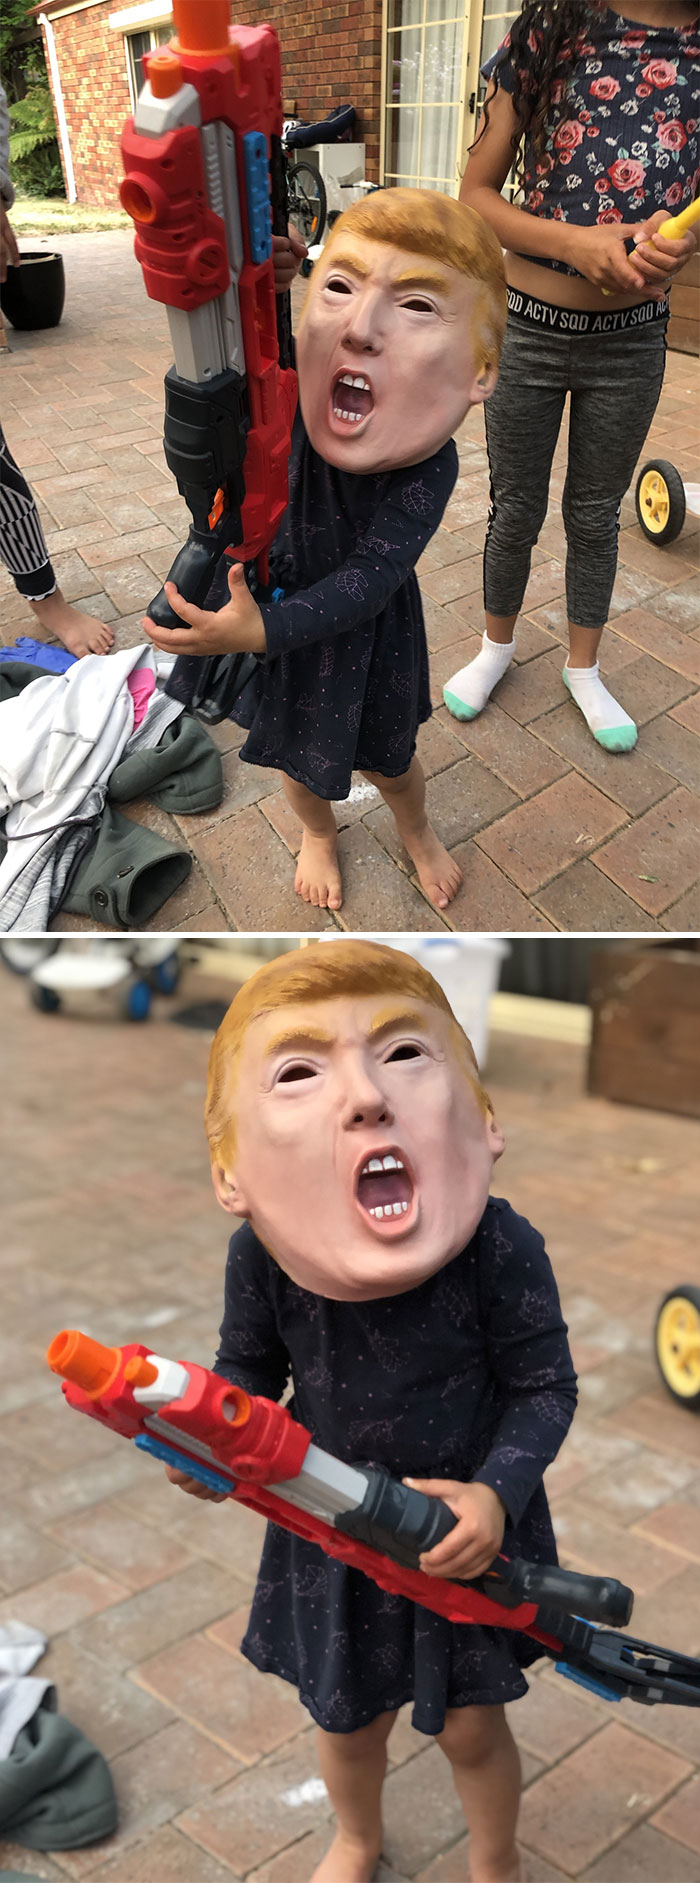 Got A $1 Trump Mask At A Yard Sale In Australia. My God I Have Never Got Such Comedic Value From A Sale